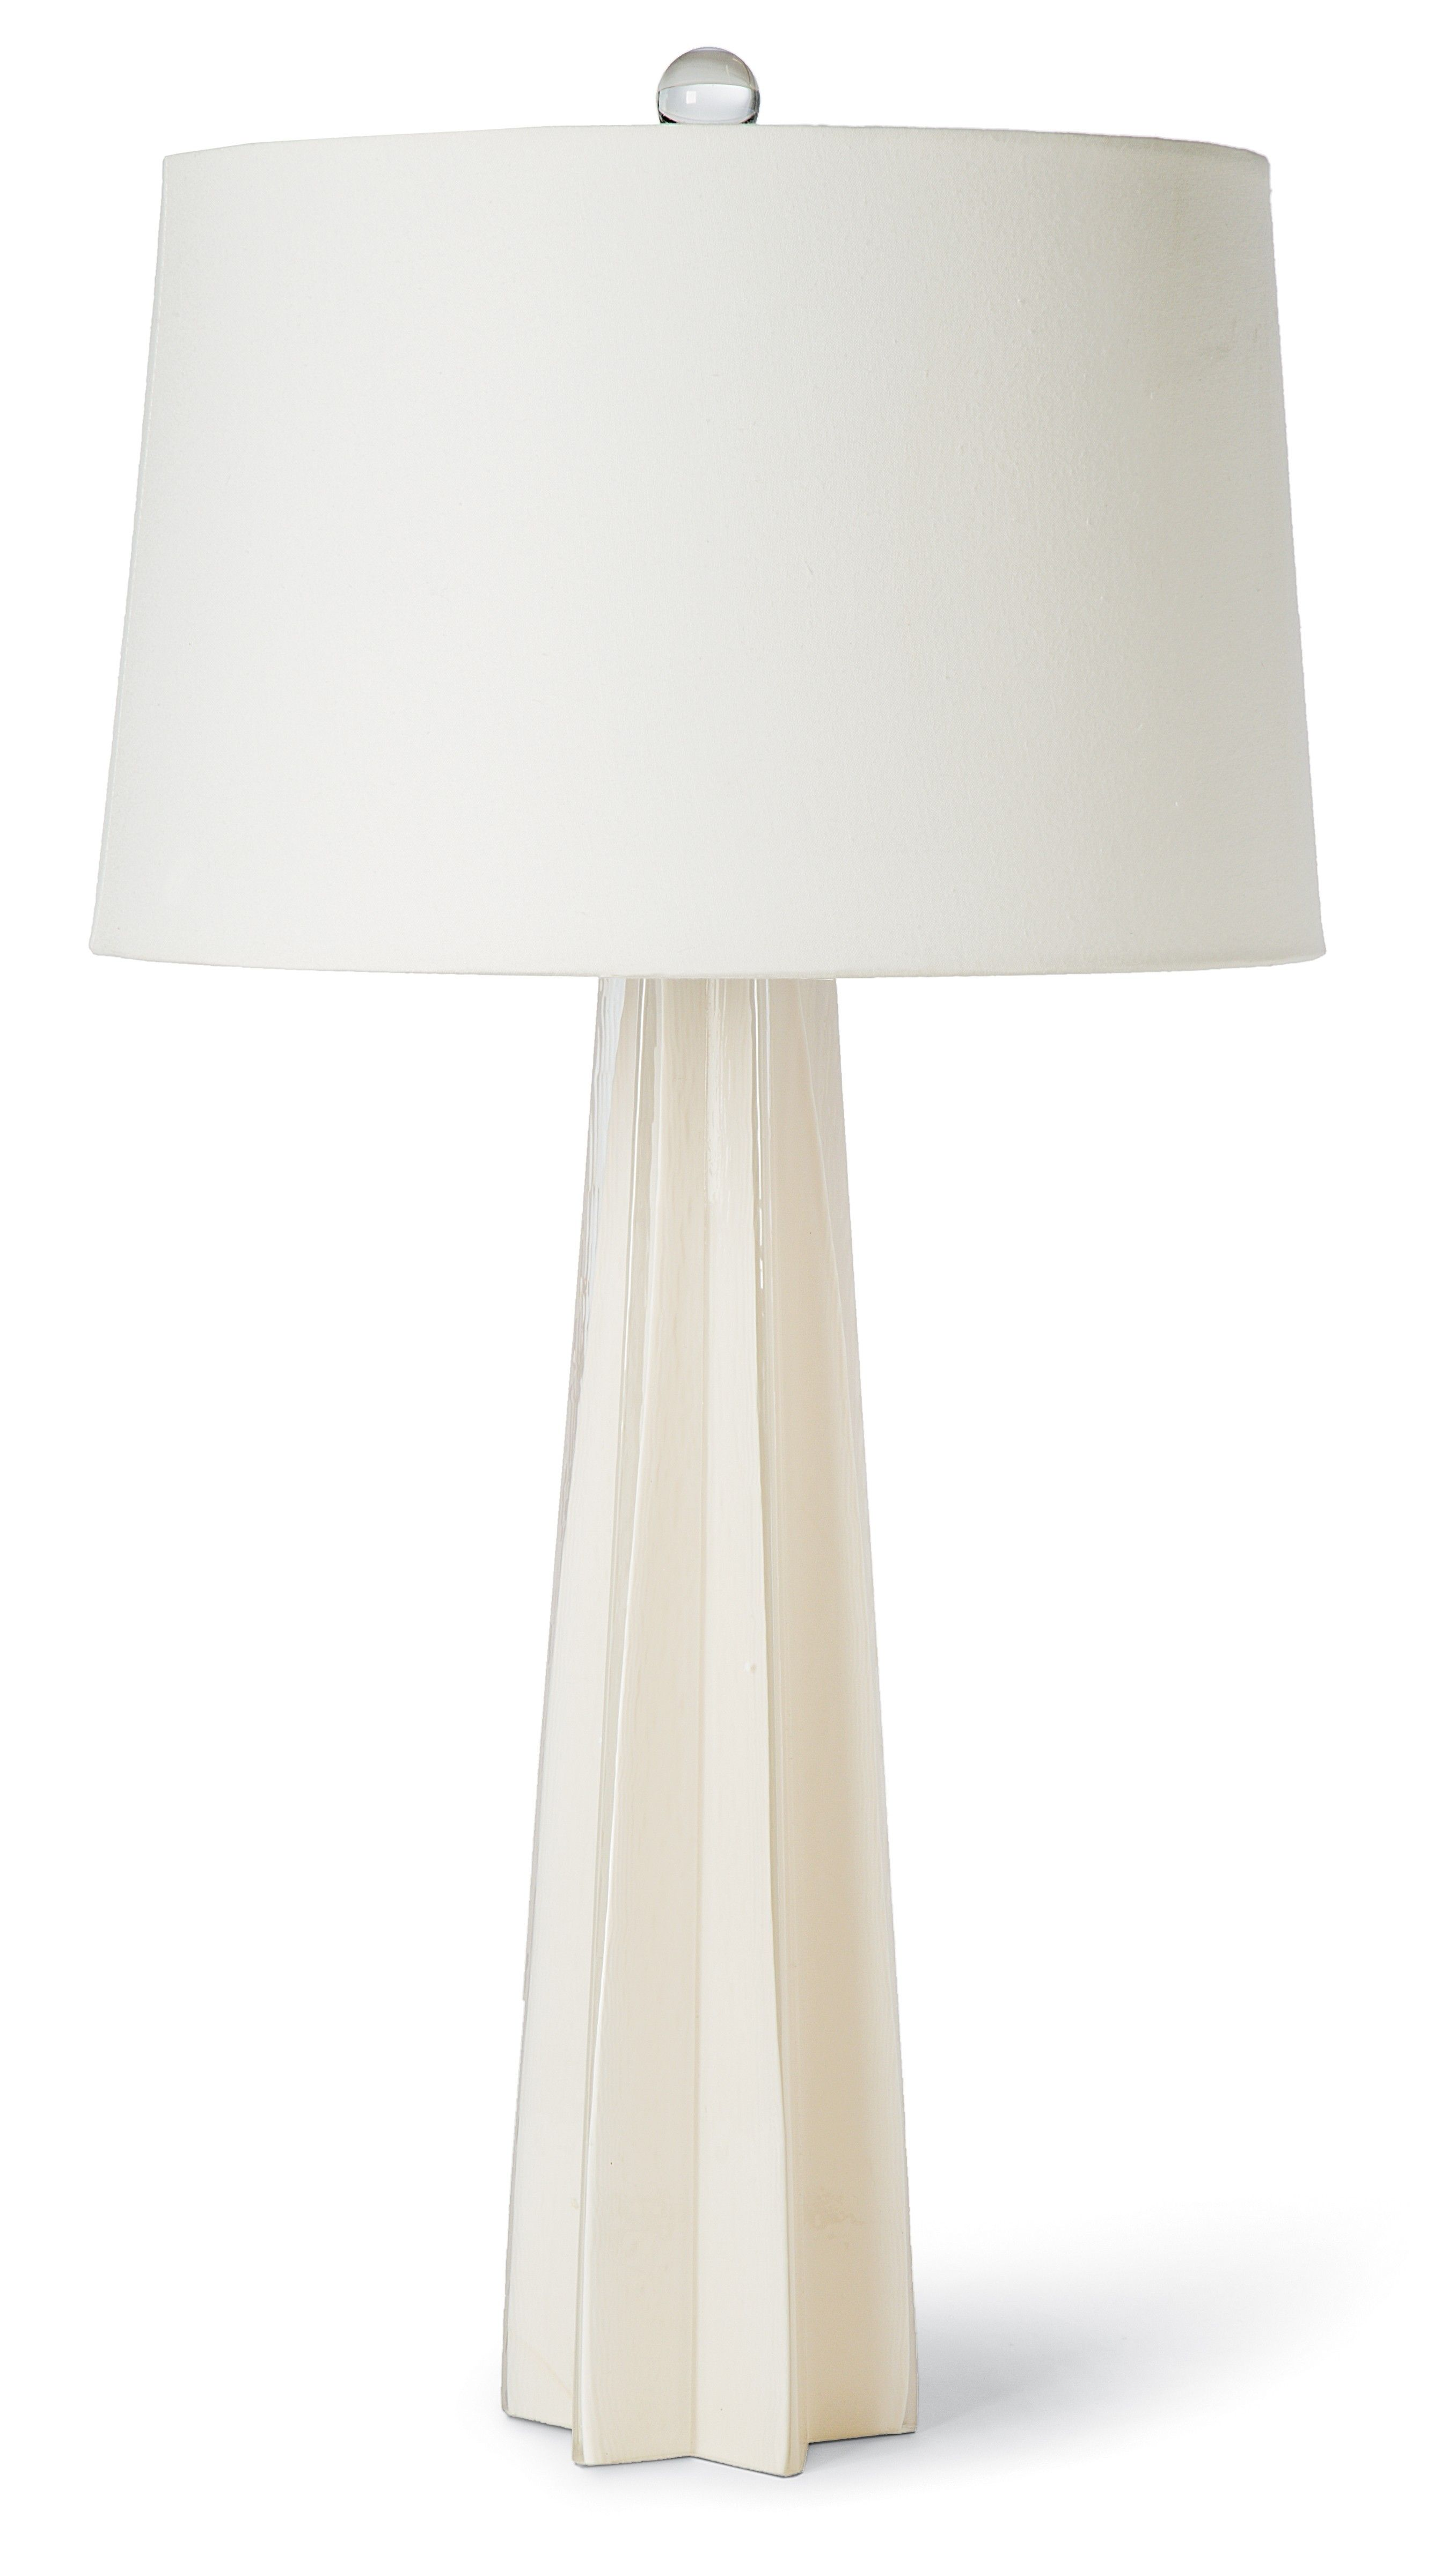 White table lamp that fits all room interiors